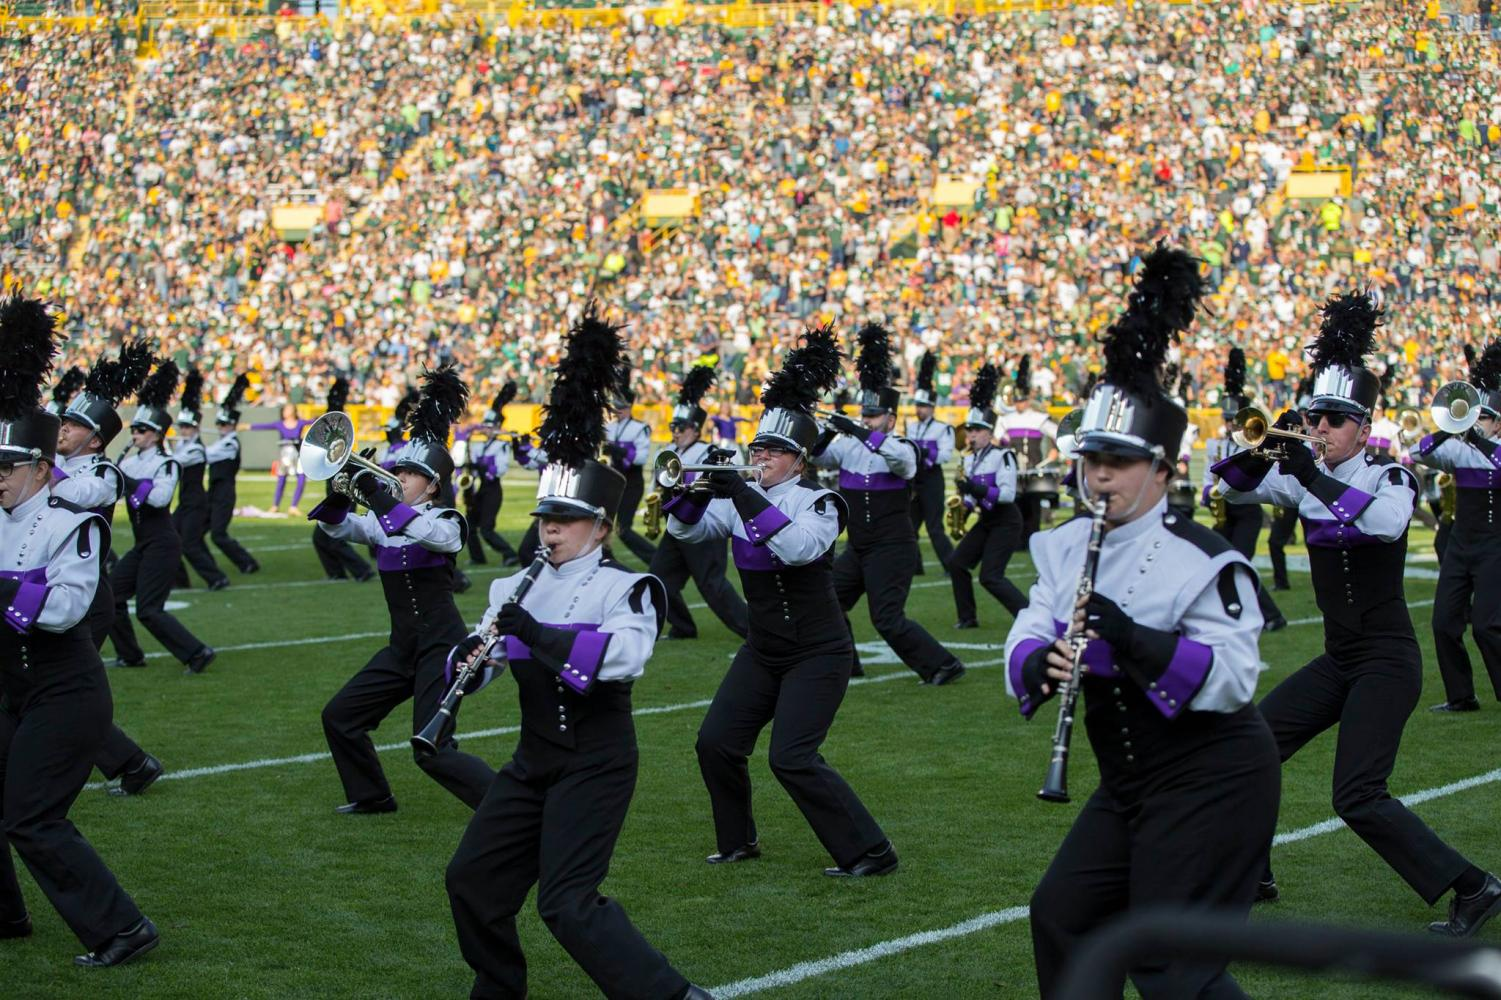 A Sept. 10, 2017 file photo shows the UW-Whitewater Marching Band performing during a halftime show at the Green Bay Packers' 2017 season opening game at Lambeau Field. Last year's theme was based on comic book superheroes.